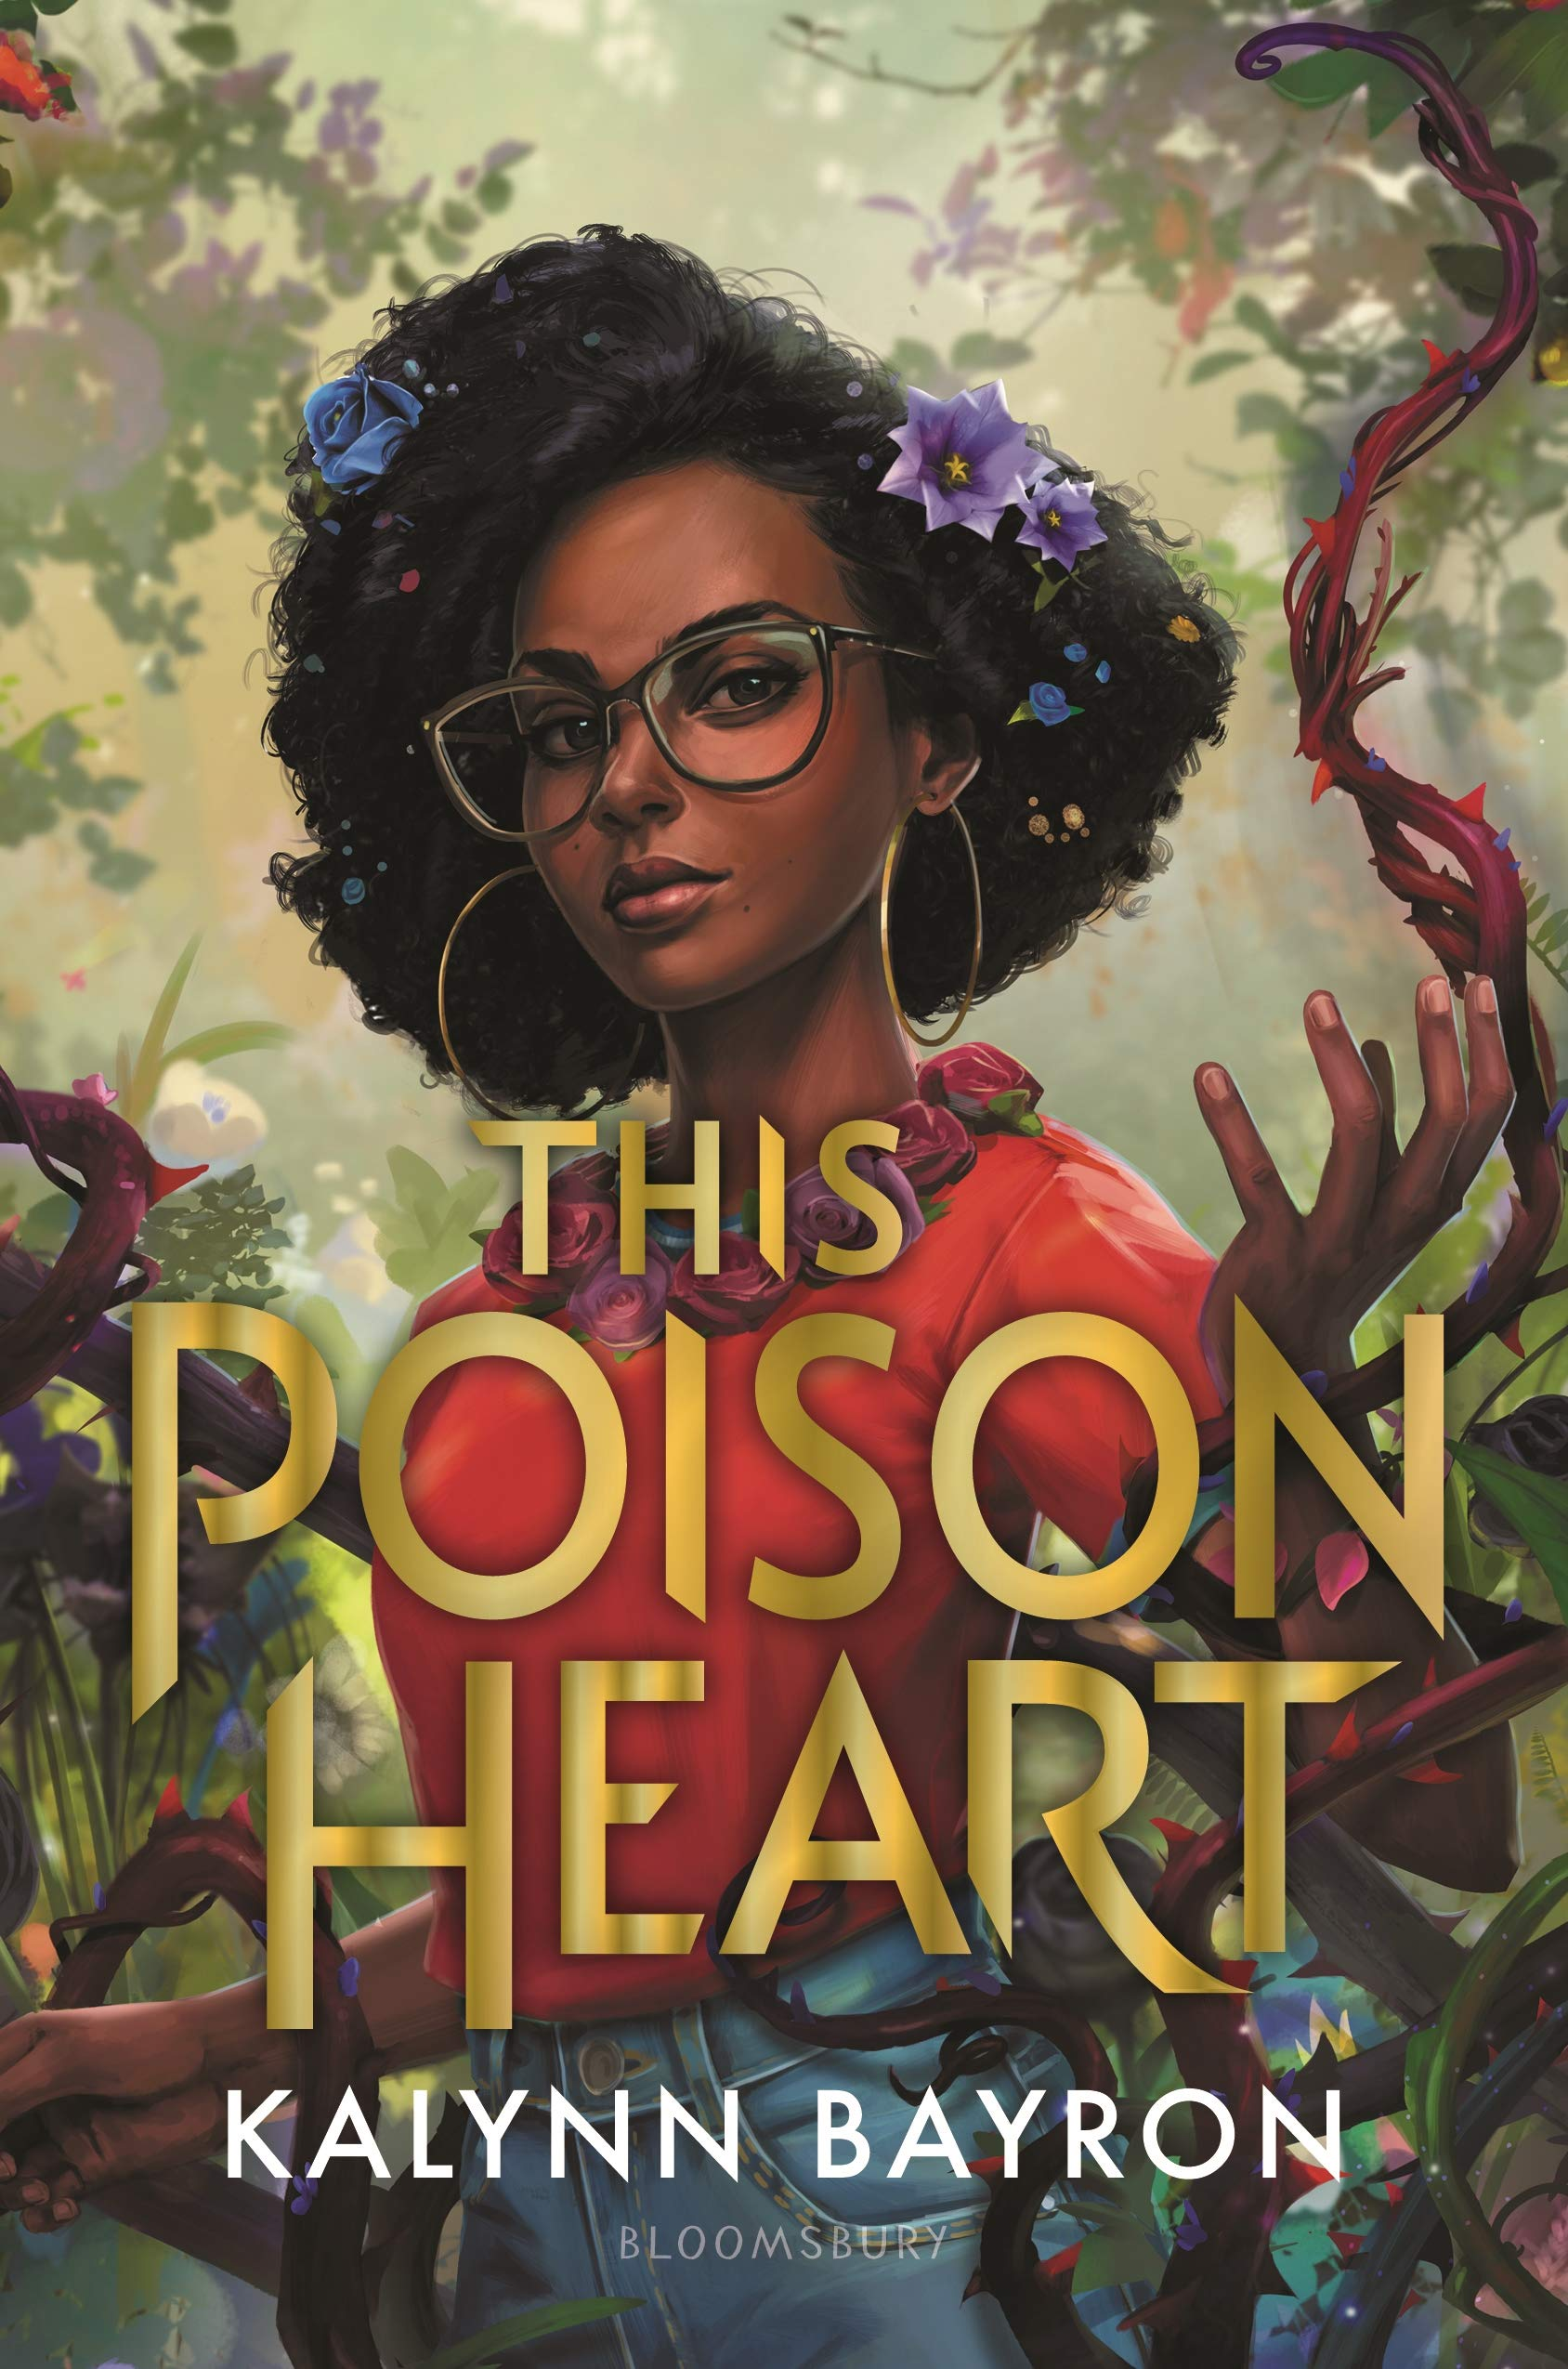 The cover of The Poison Heart by Kalynn Bayron